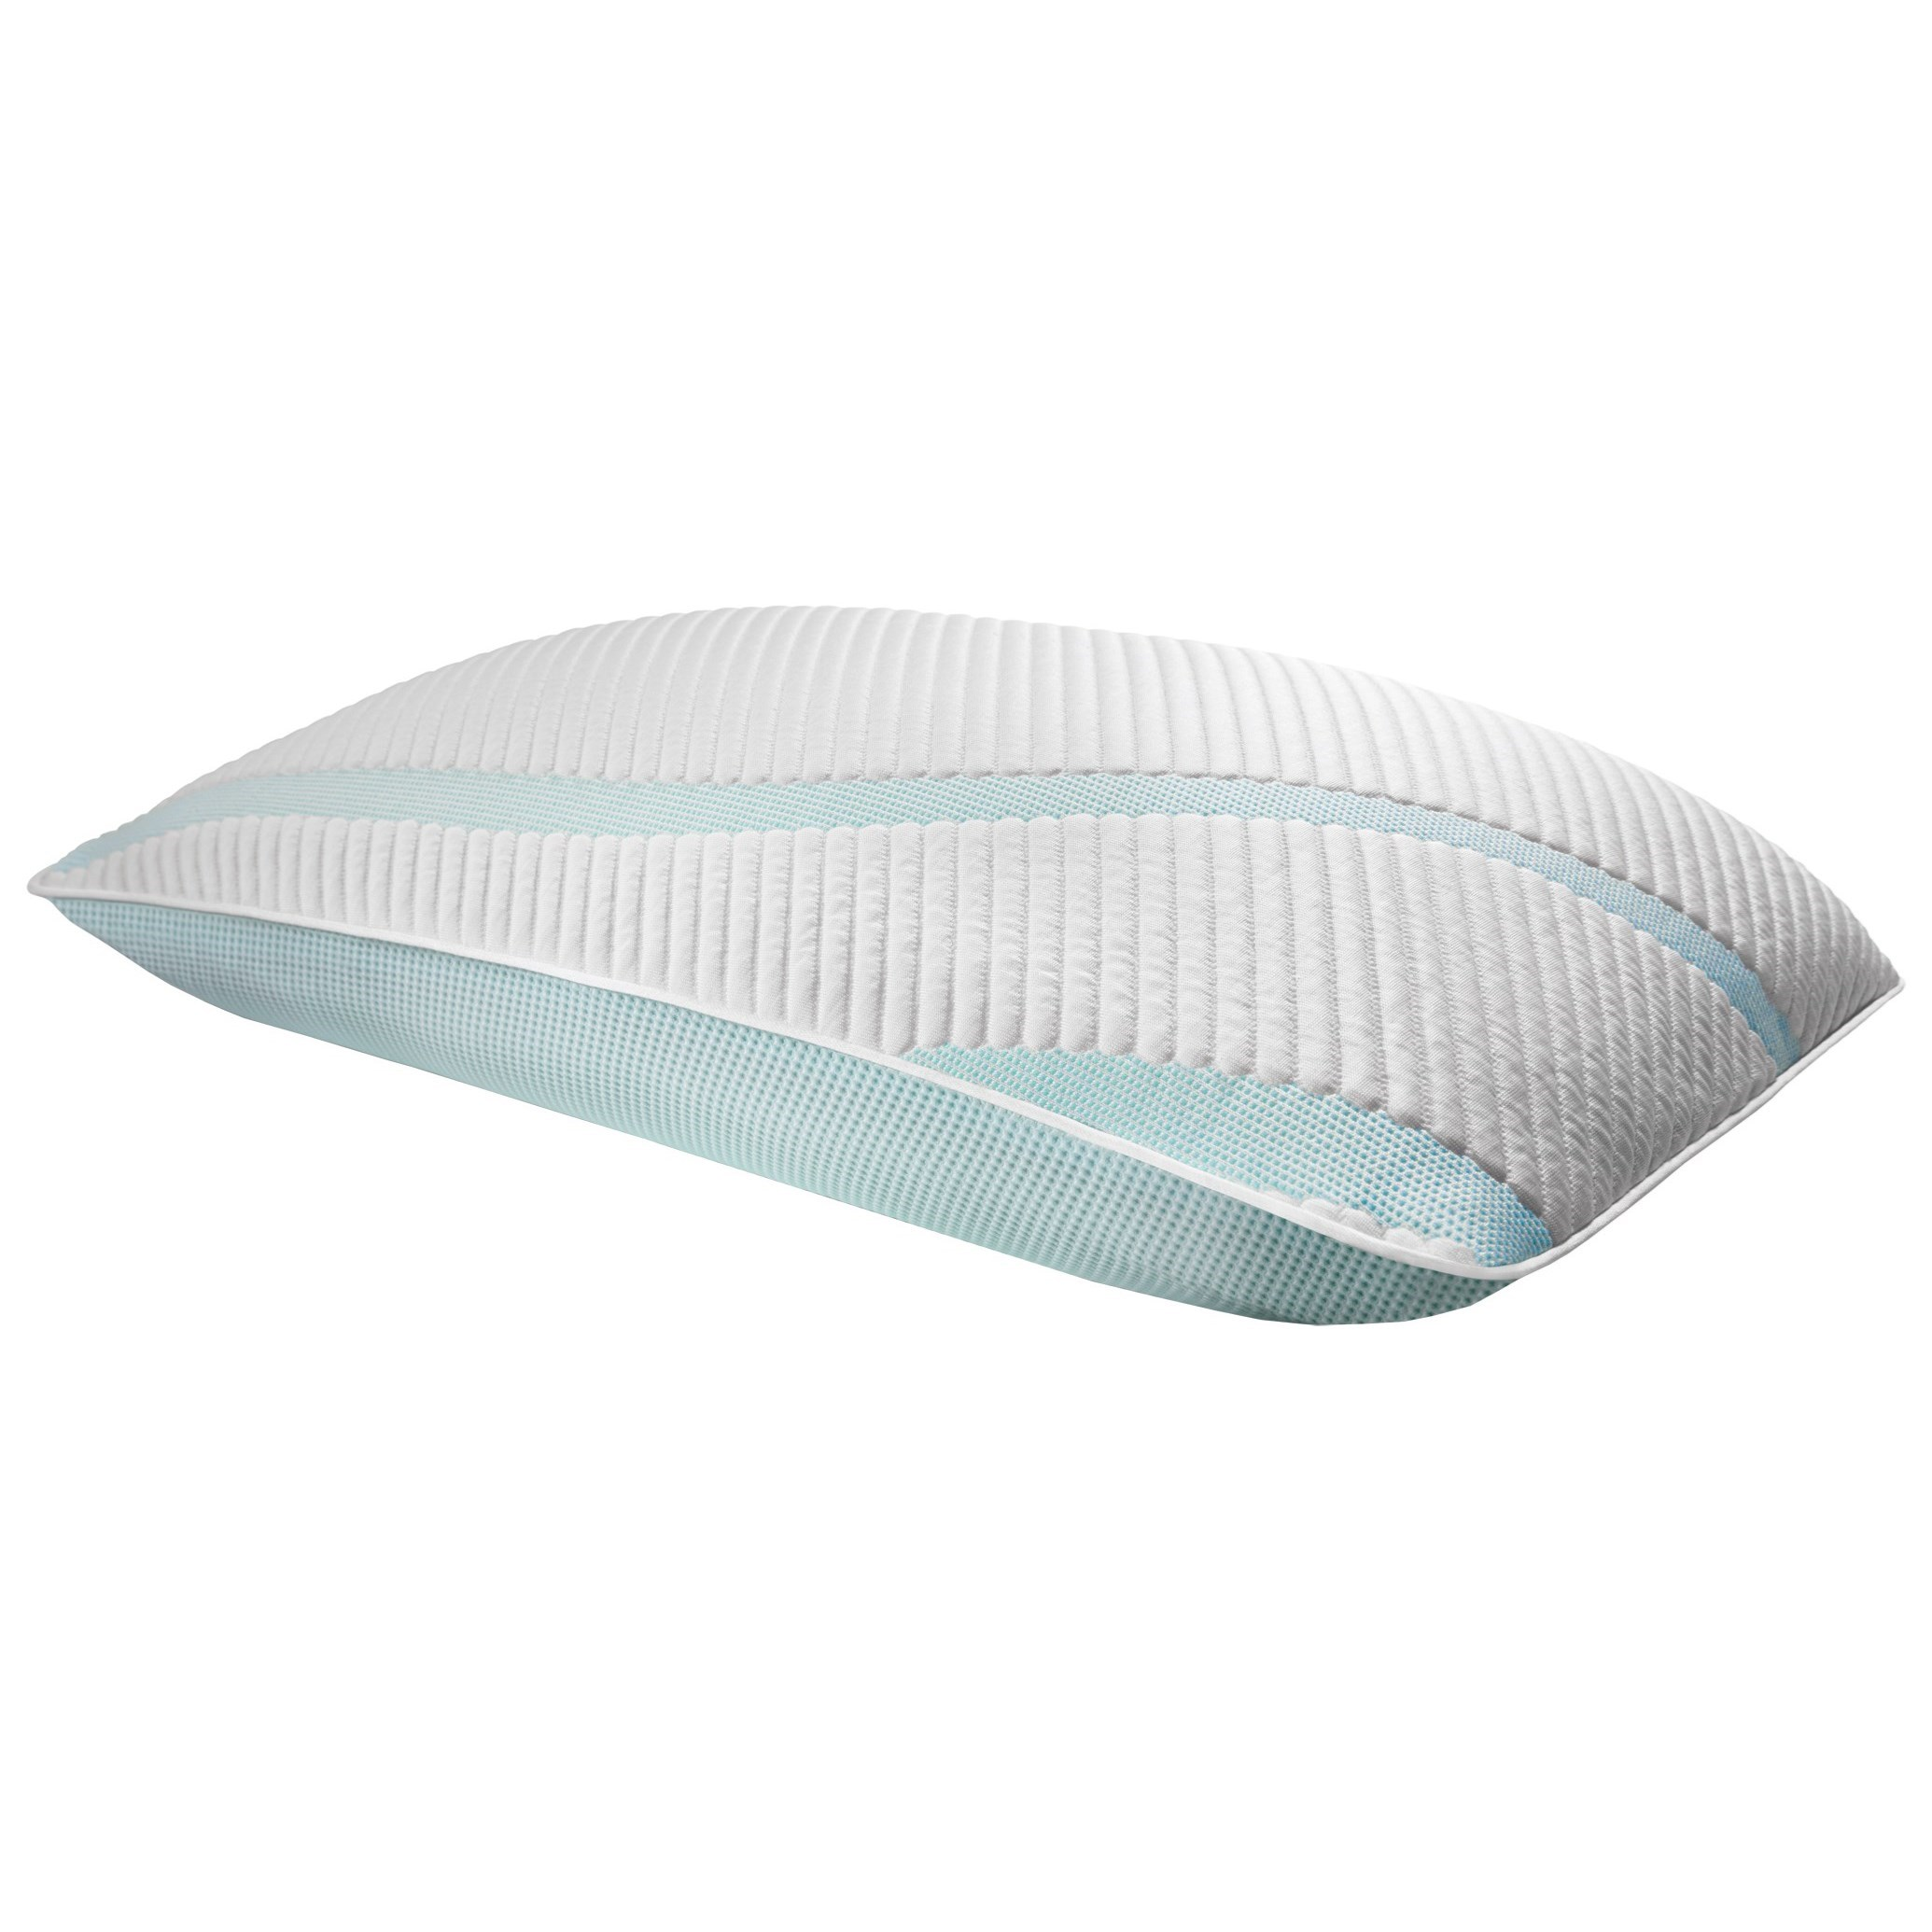 explore foam pillow ventilated cooling pillows modern gel memory cool sleep sizes gusseted multiple this ip item